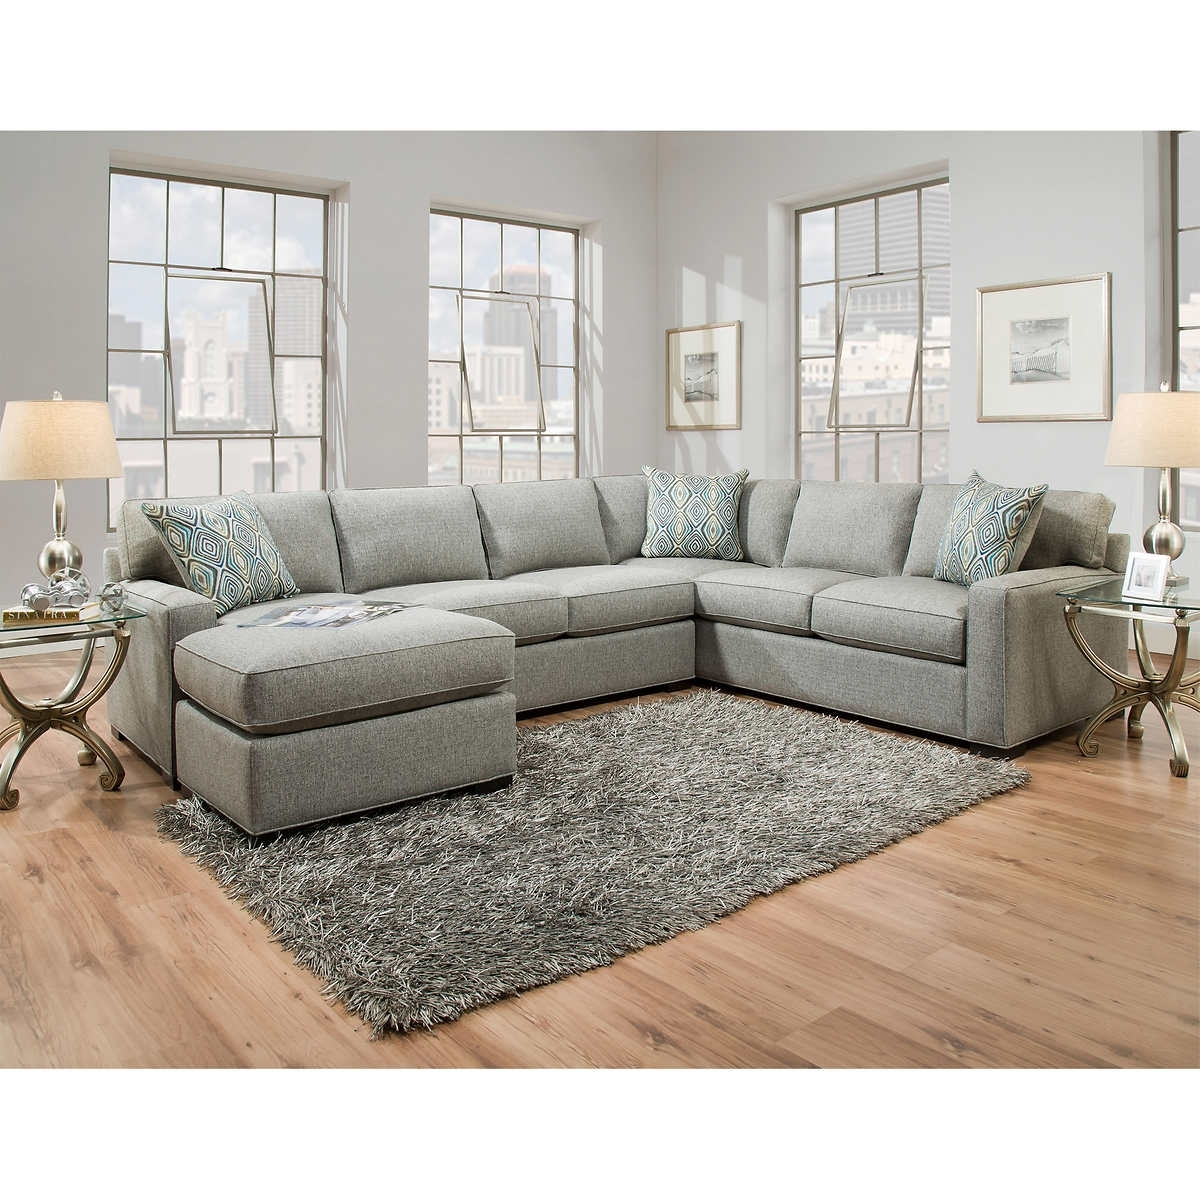 Fancy Costco Sofas Sectionals 91 In Sectional Sofas Raleigh Nc With For Raleigh Nc Sectional Sofas (View 5 of 10)